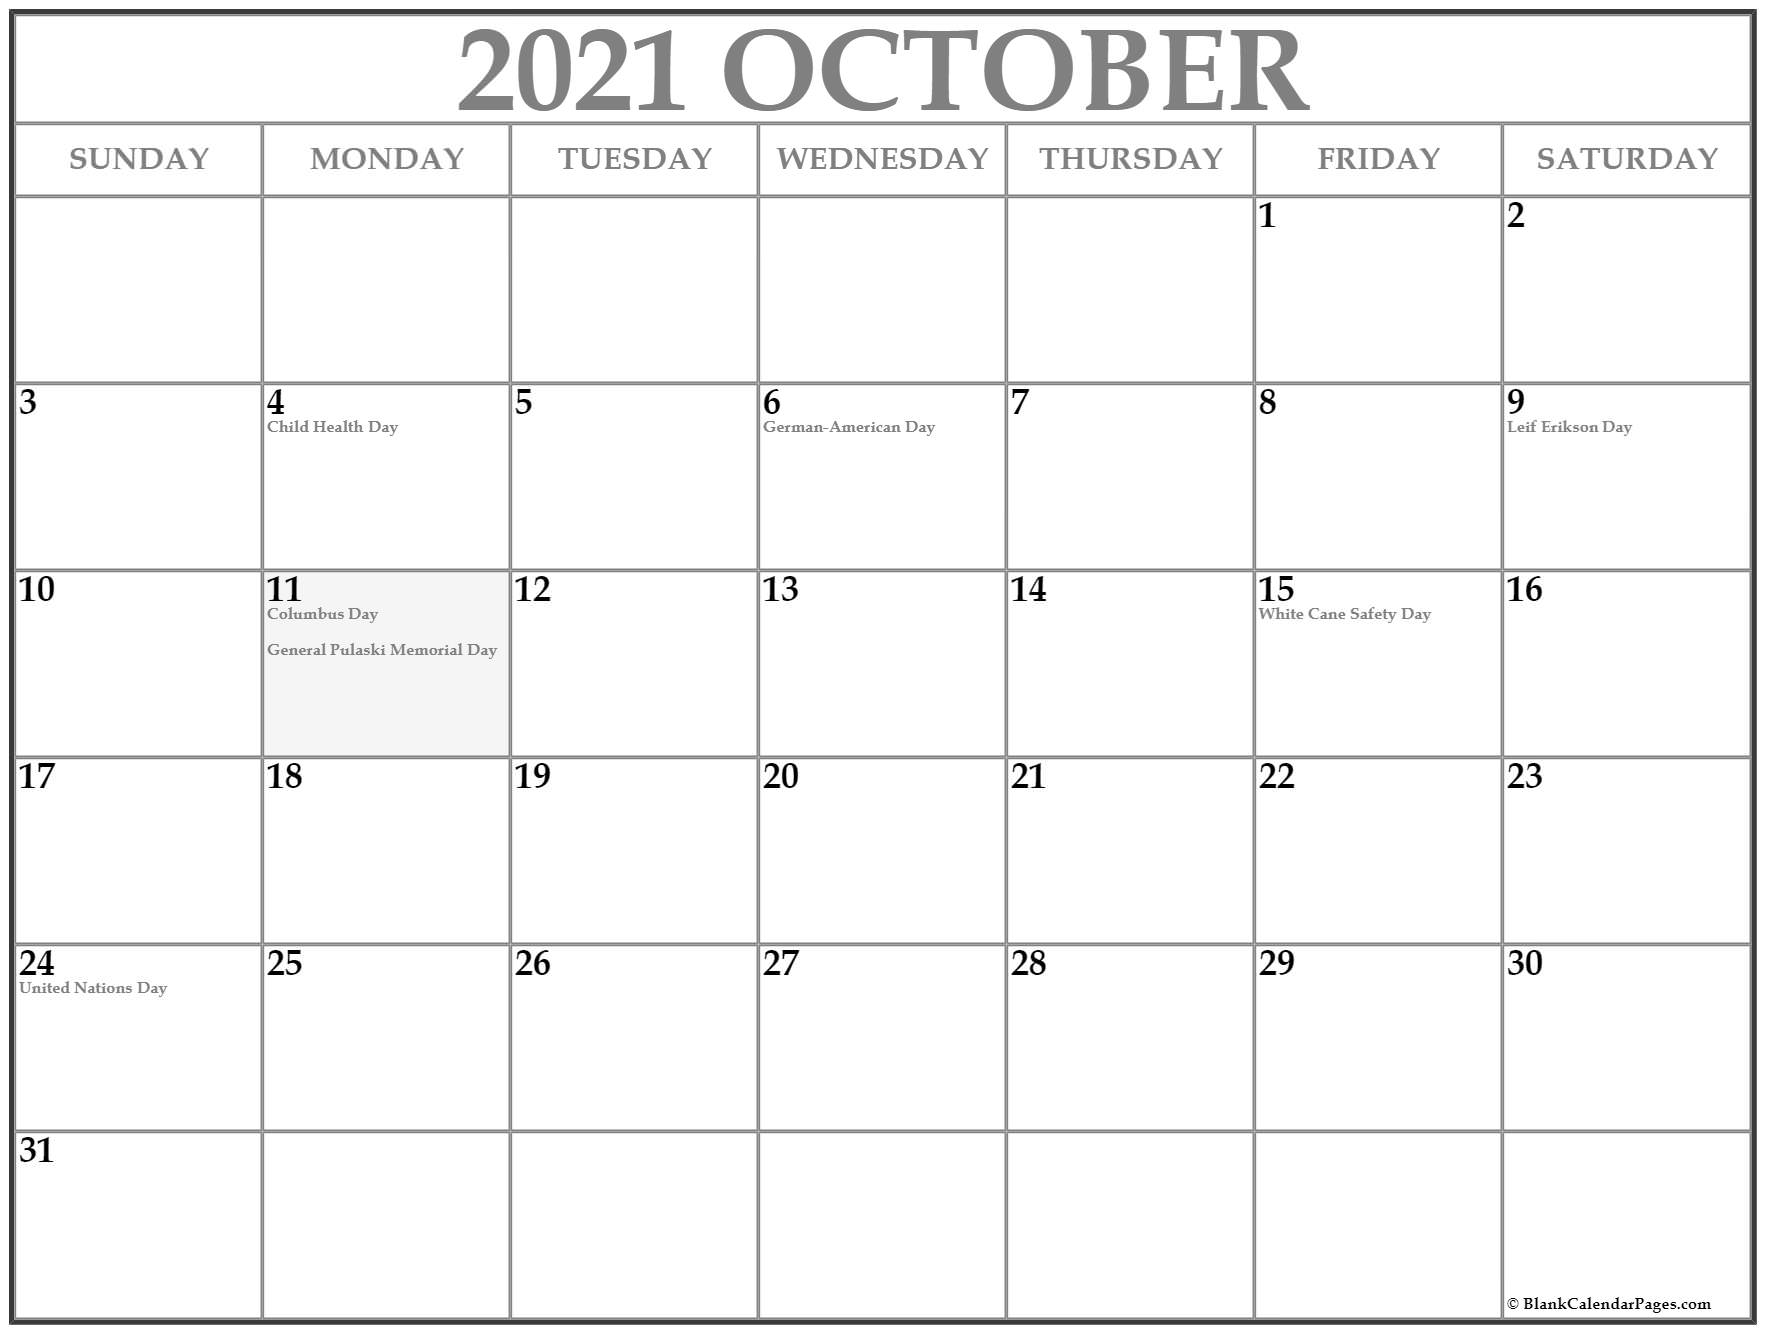 October USA holidays calendar